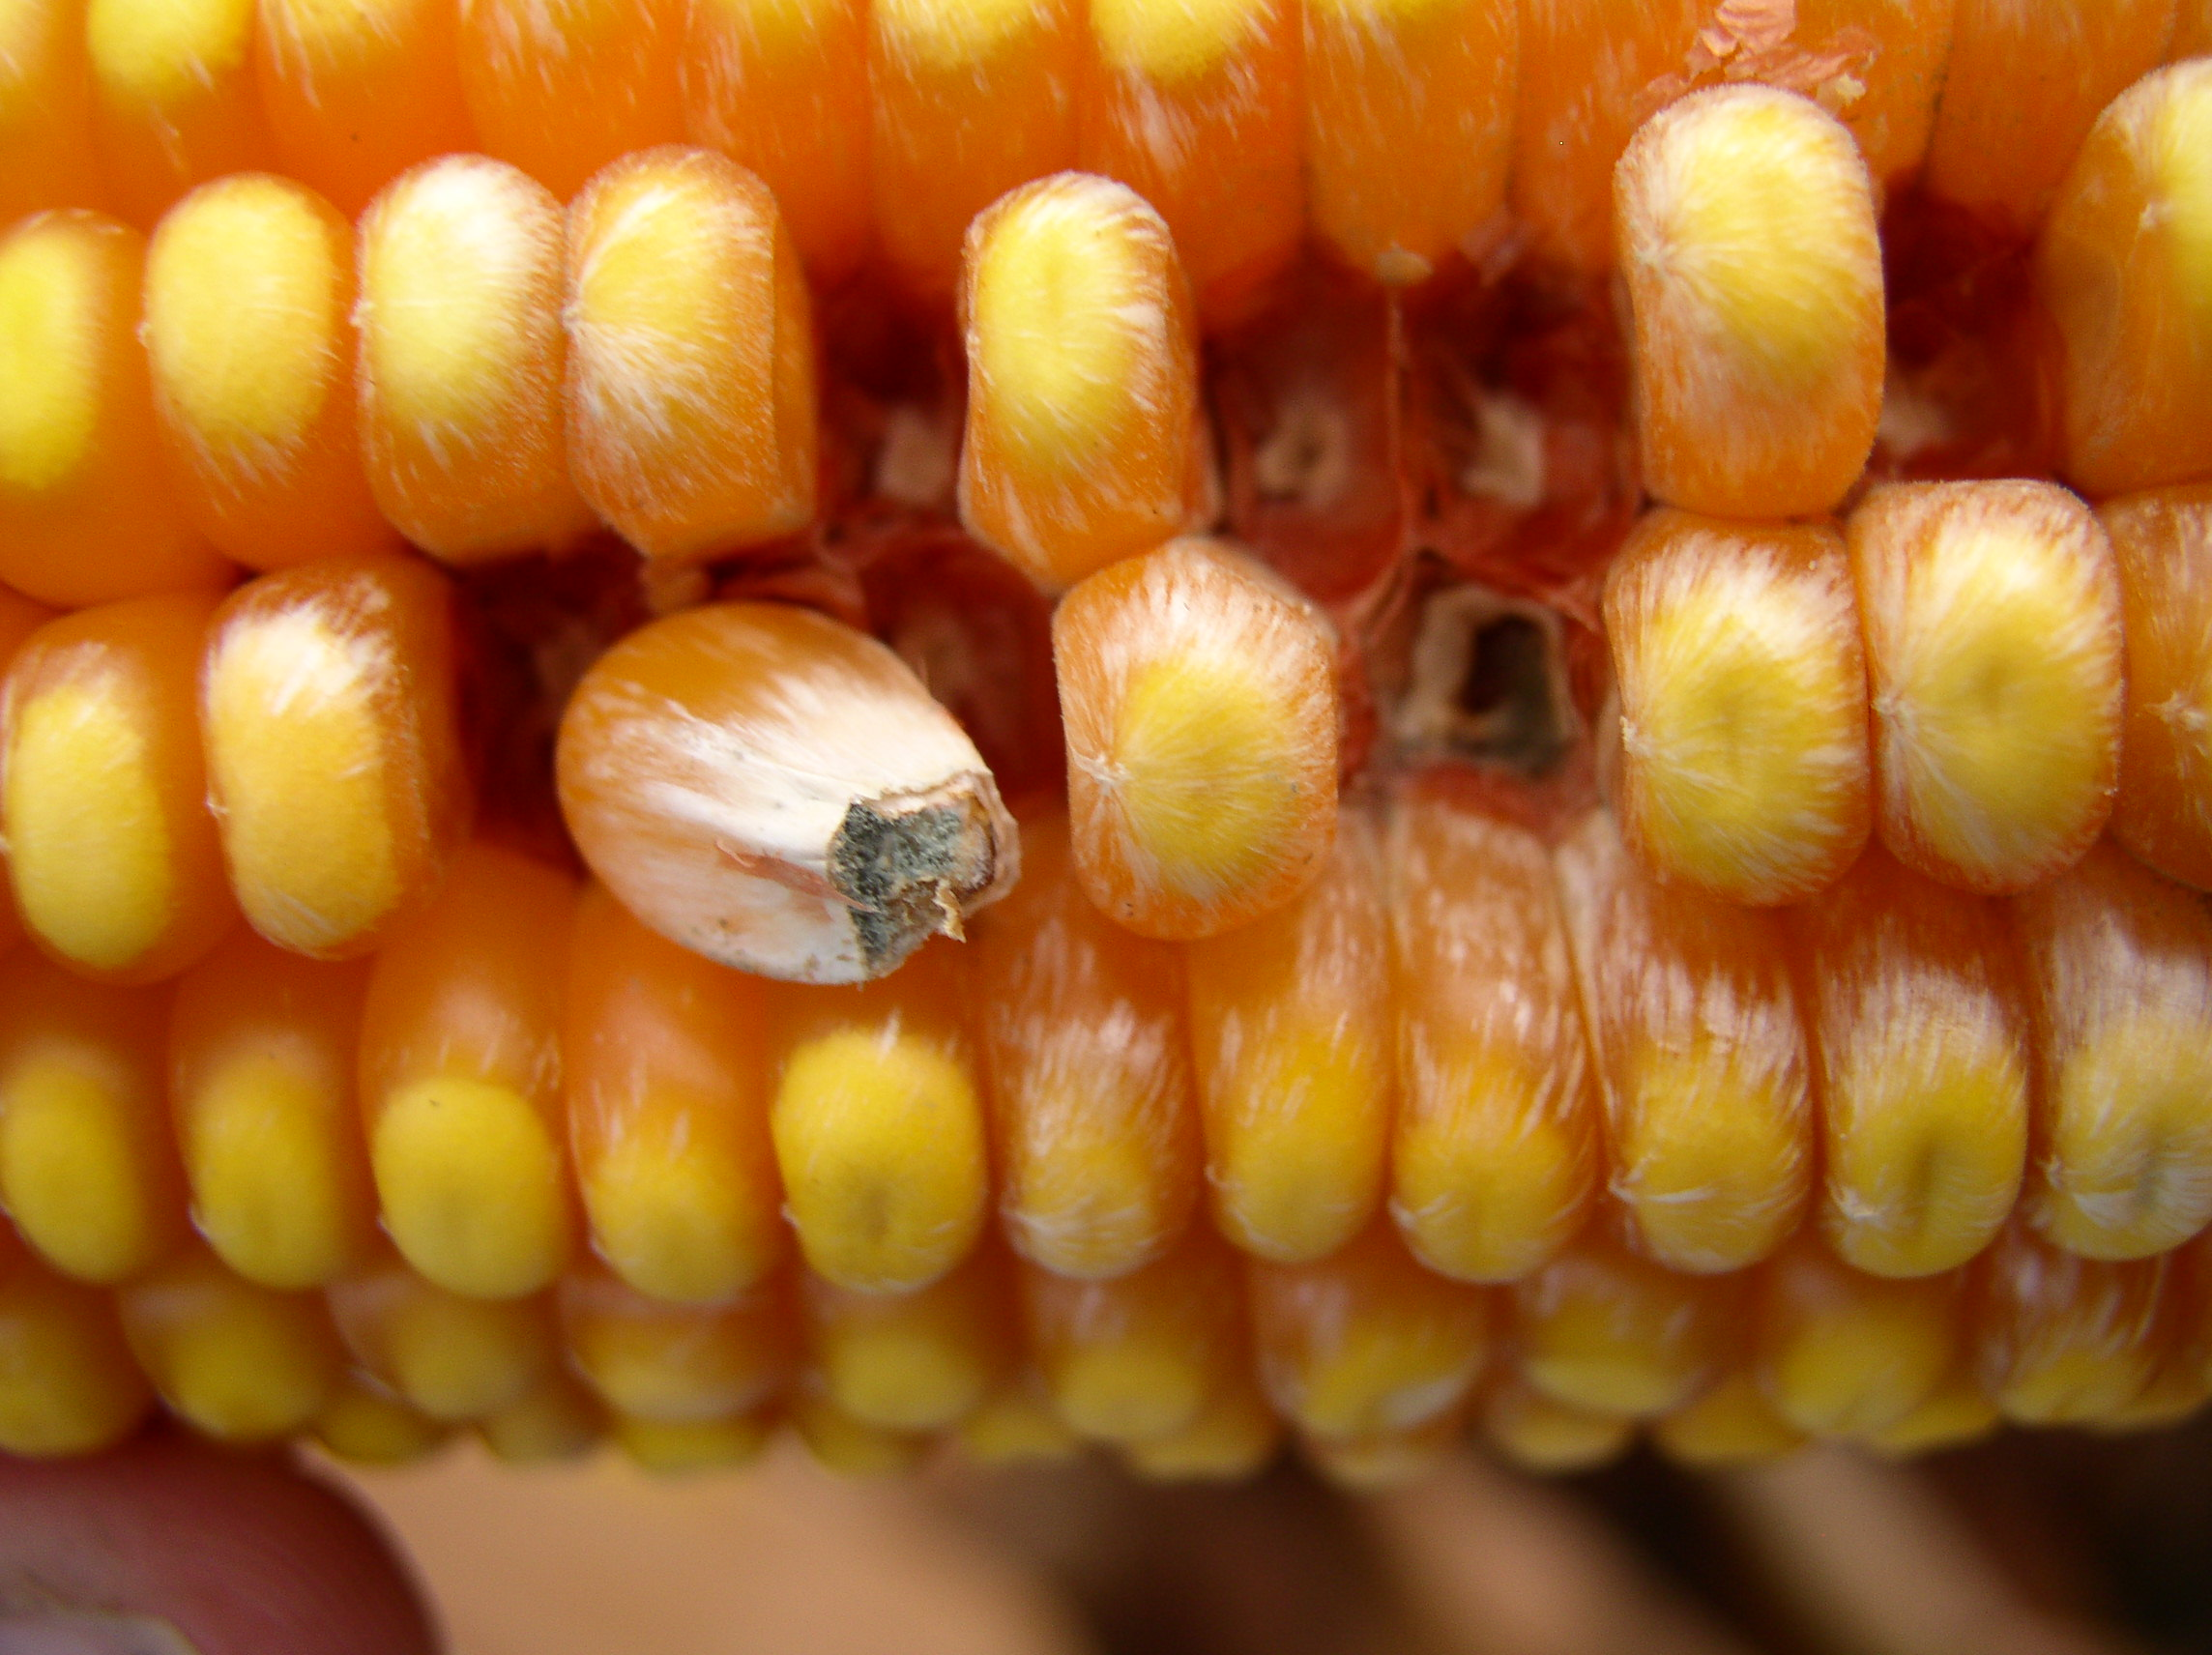 Infected kernels can appear bleached or streaked.